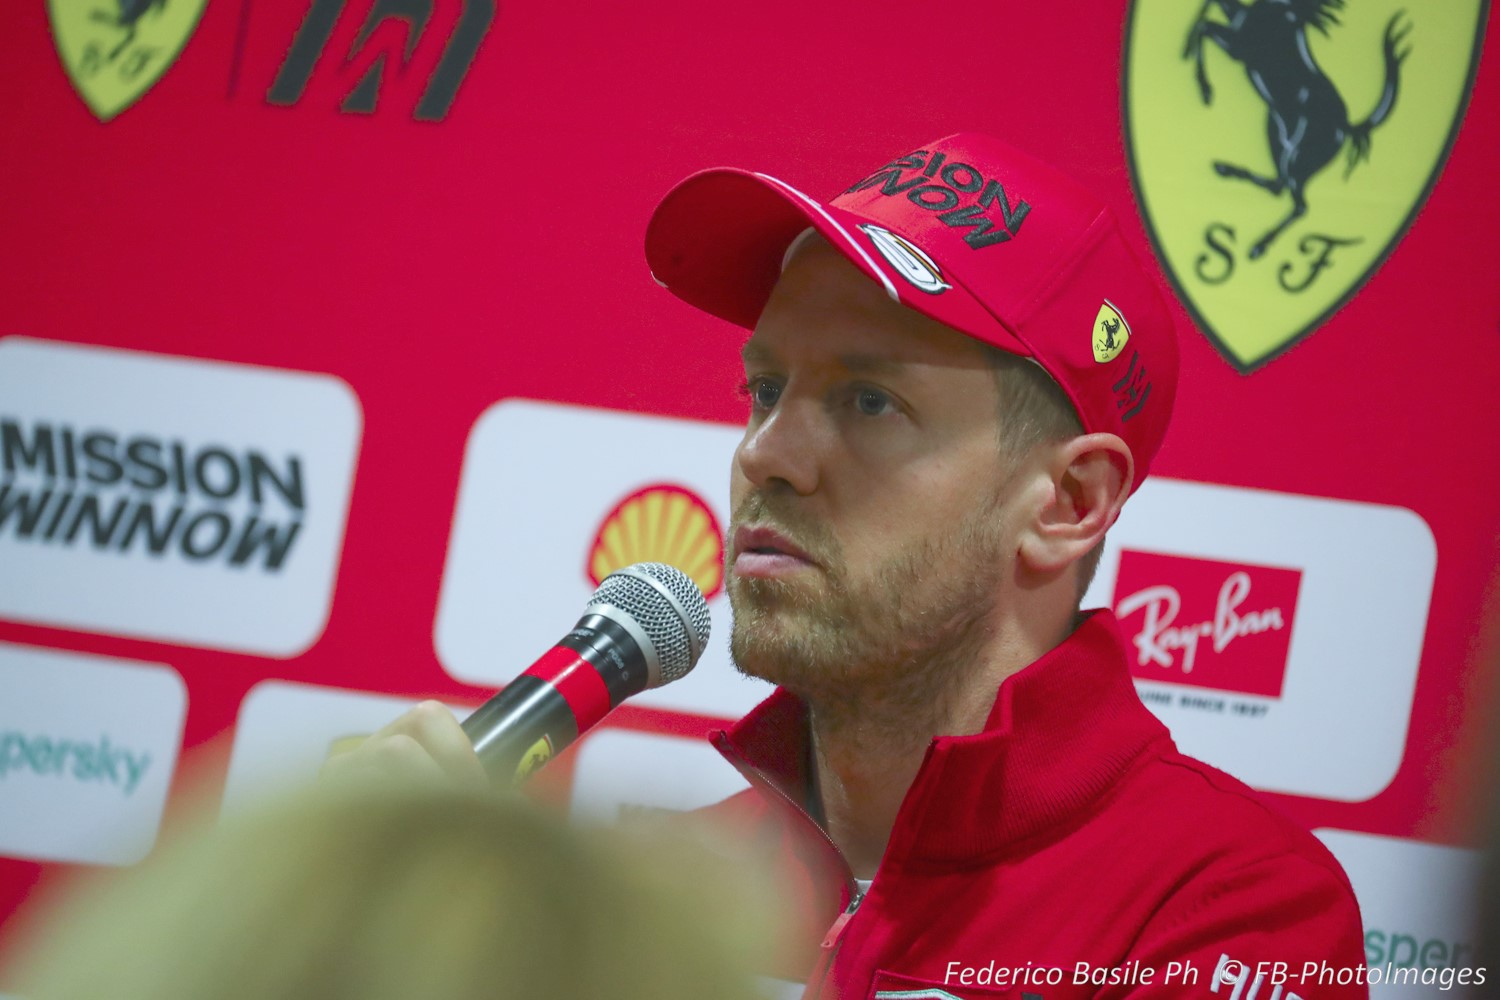 Why does Vettel want to stay with a team that gives near zero chance to win another title